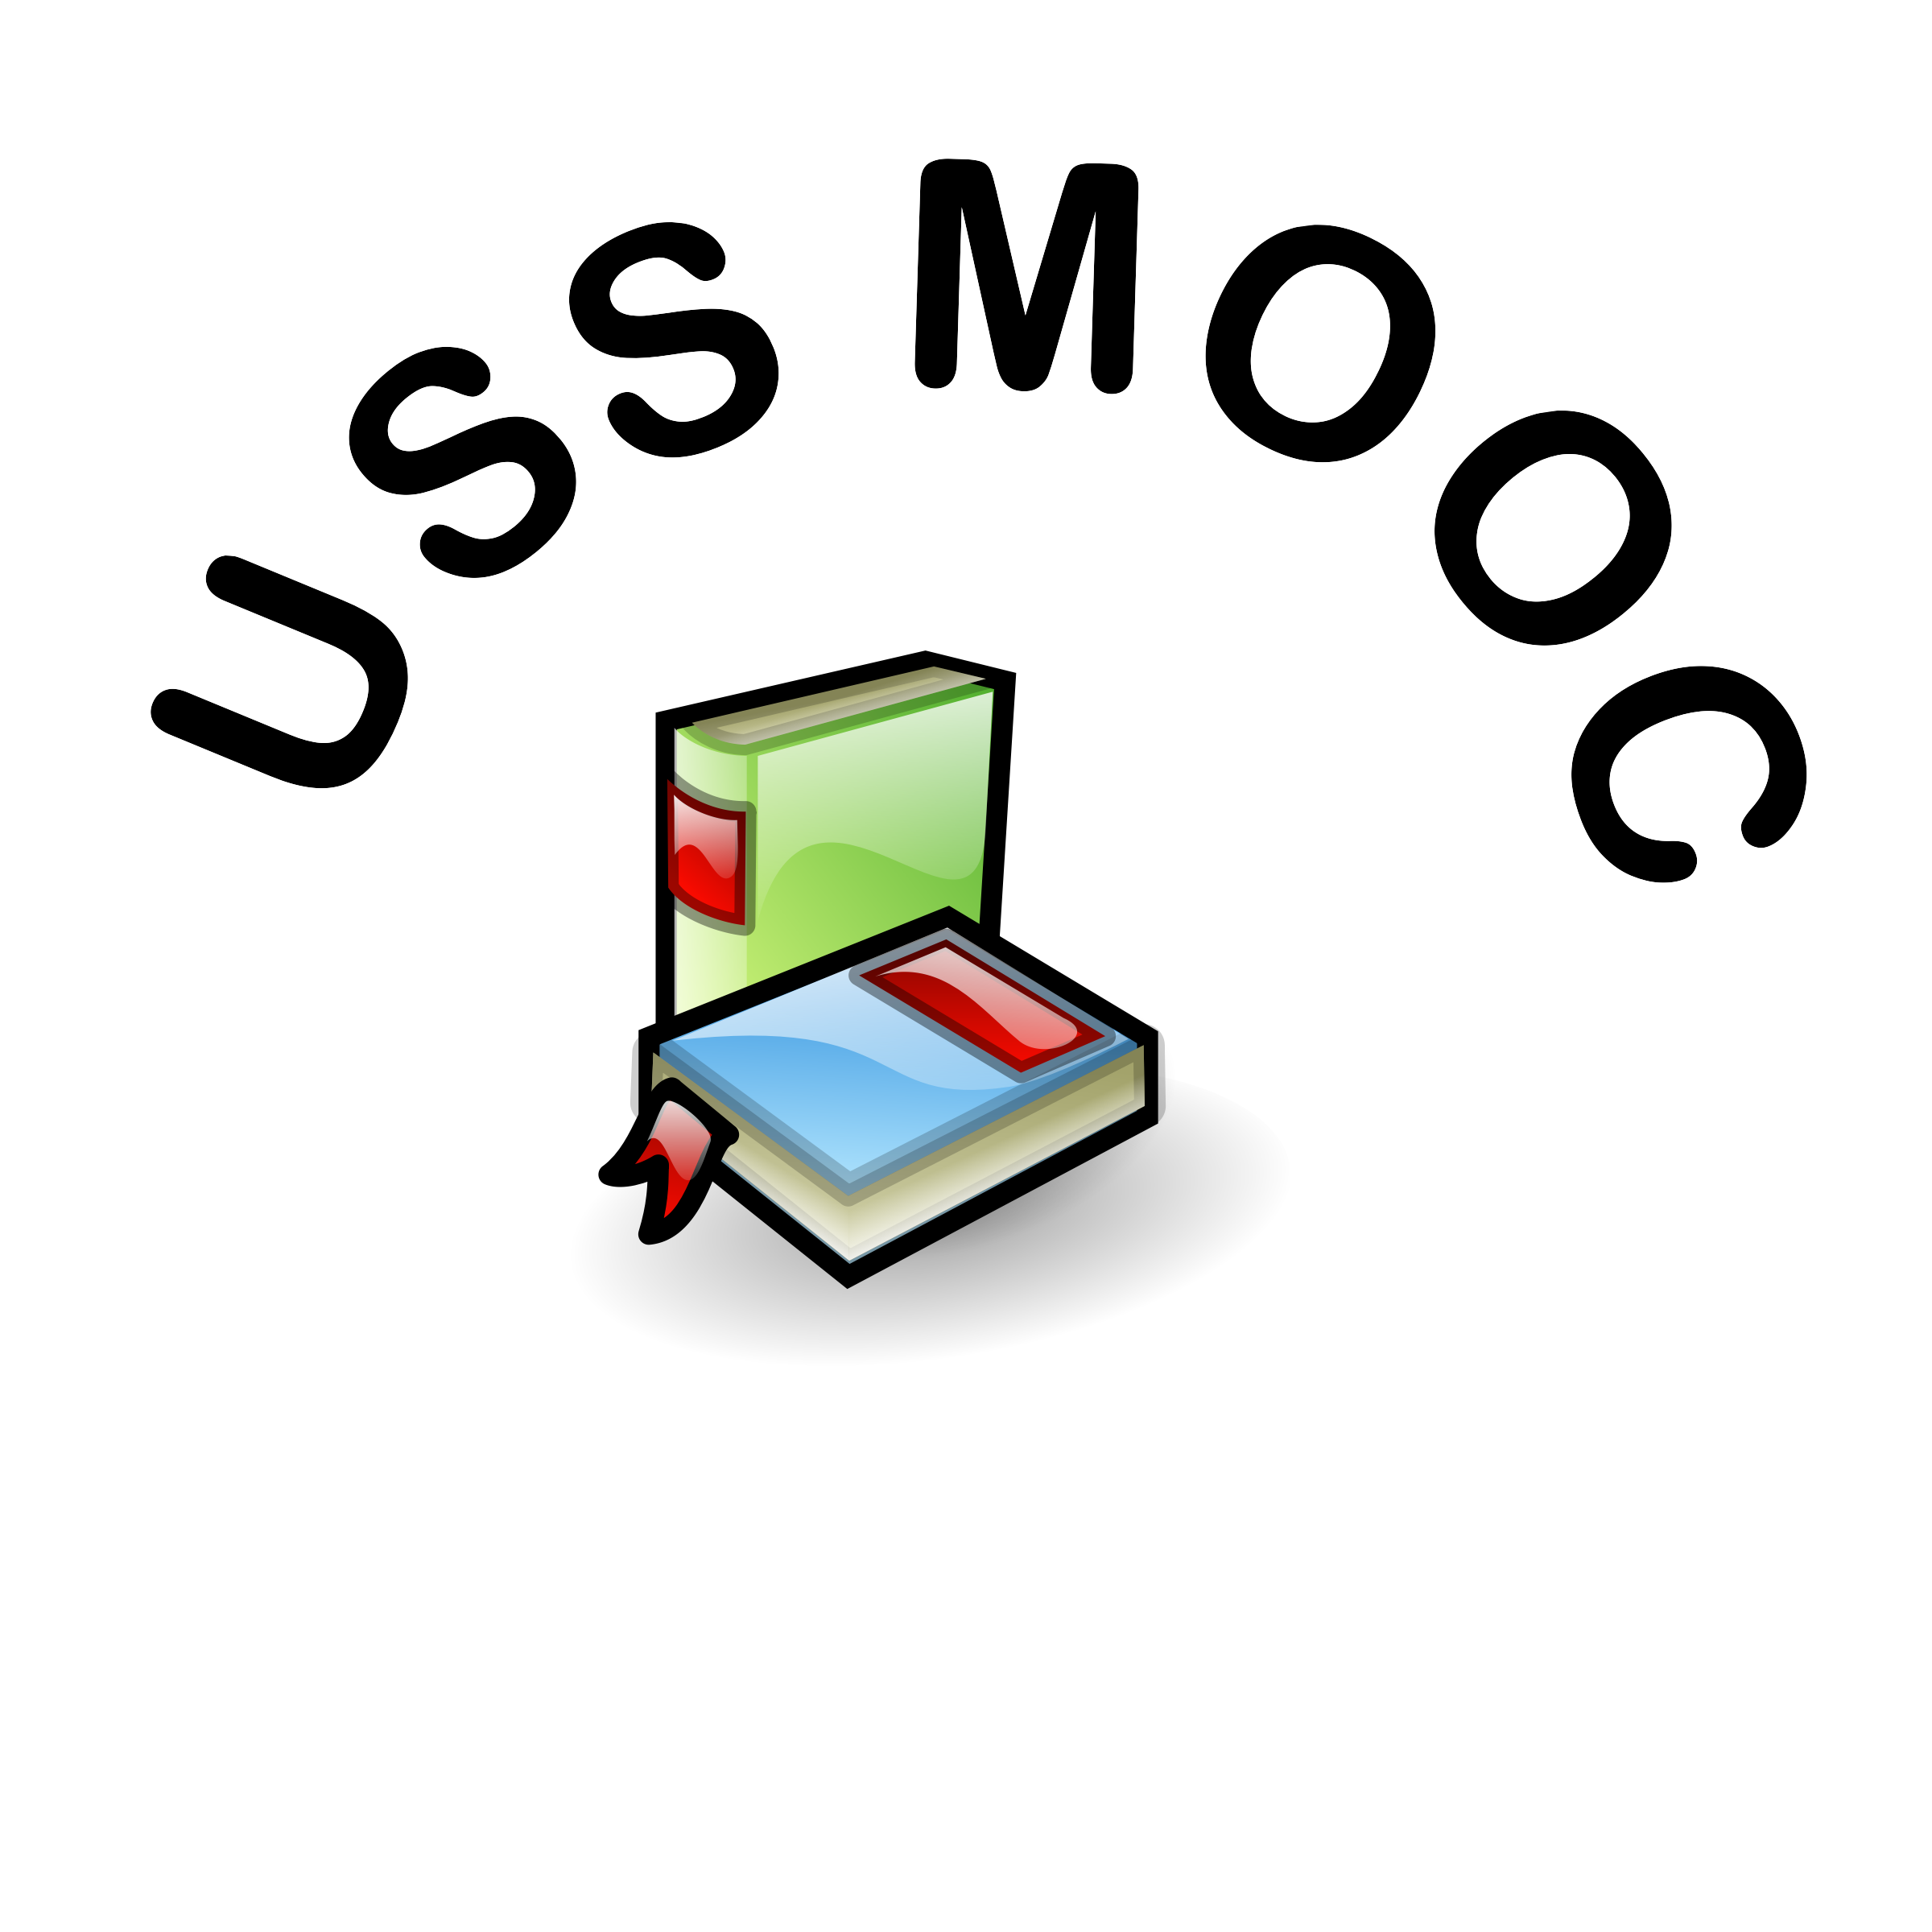 USS MOOC with Owl and Books by yleventhal